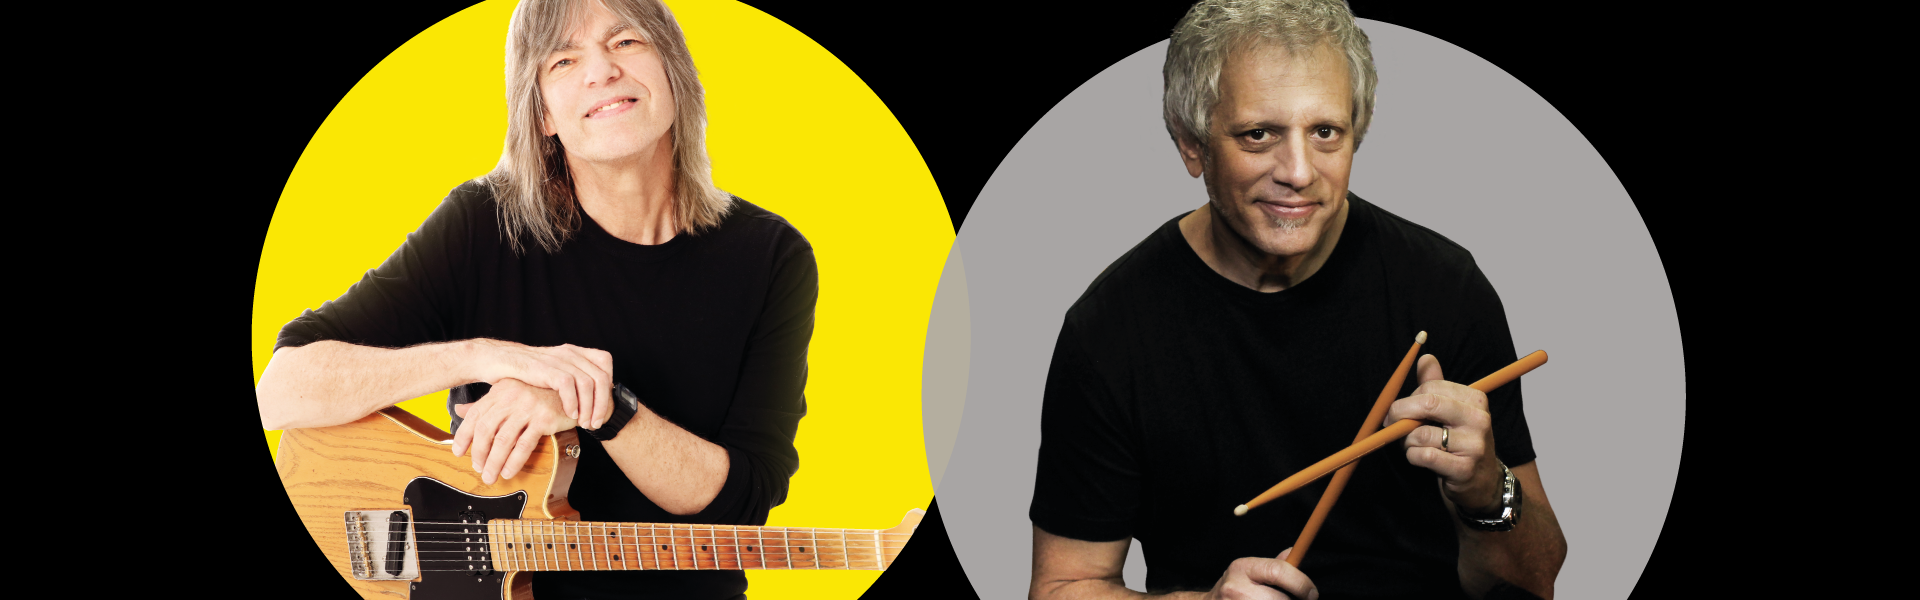 Mike Stern / Dave Wekcl Featuring Tom Kennedy & Bob Franceschini